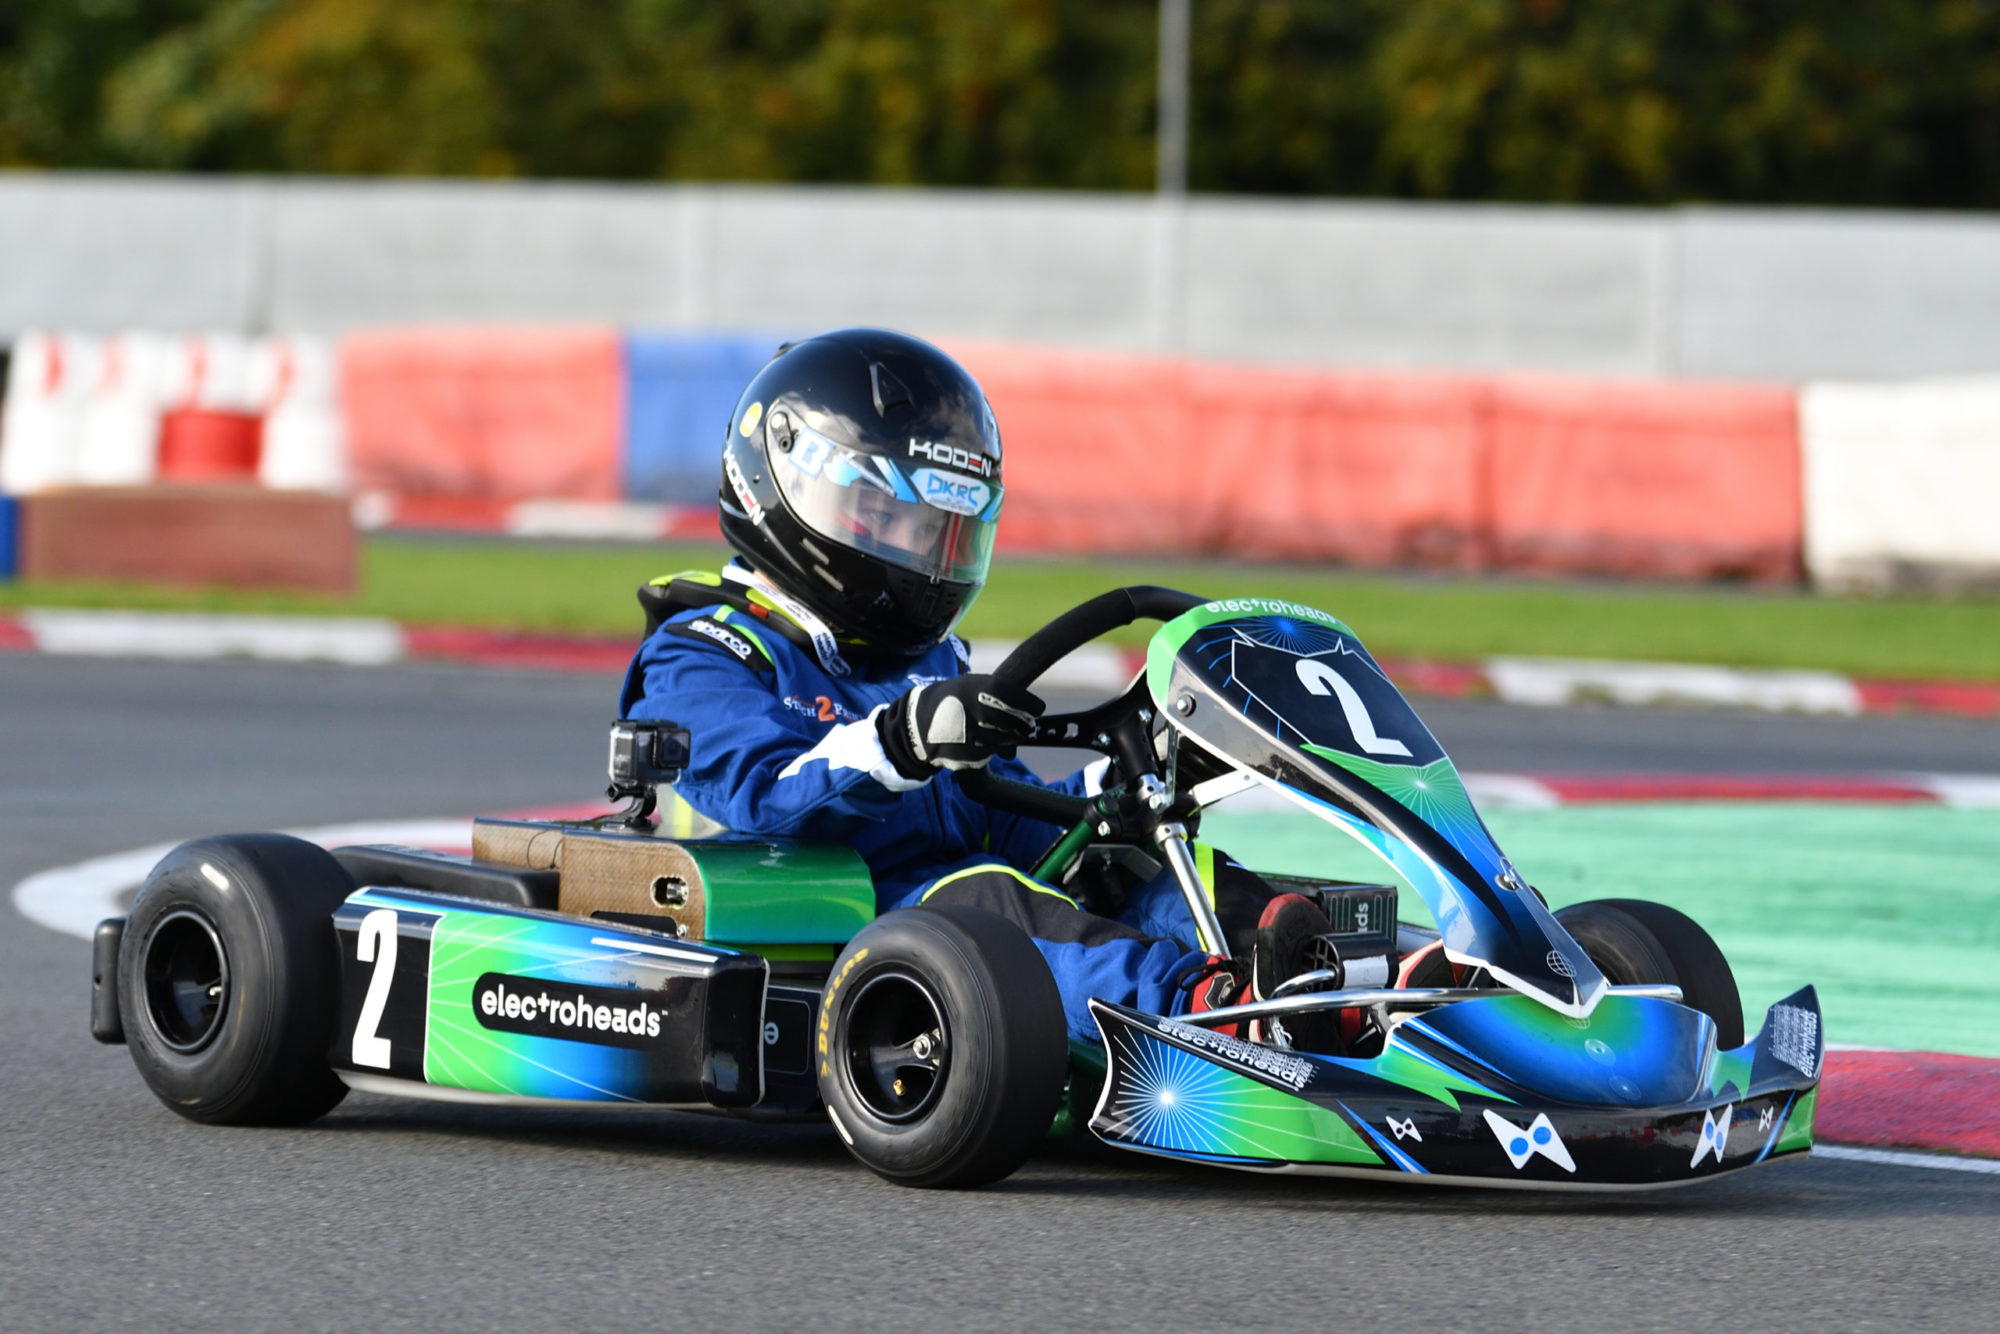 Wes Coombs Racing